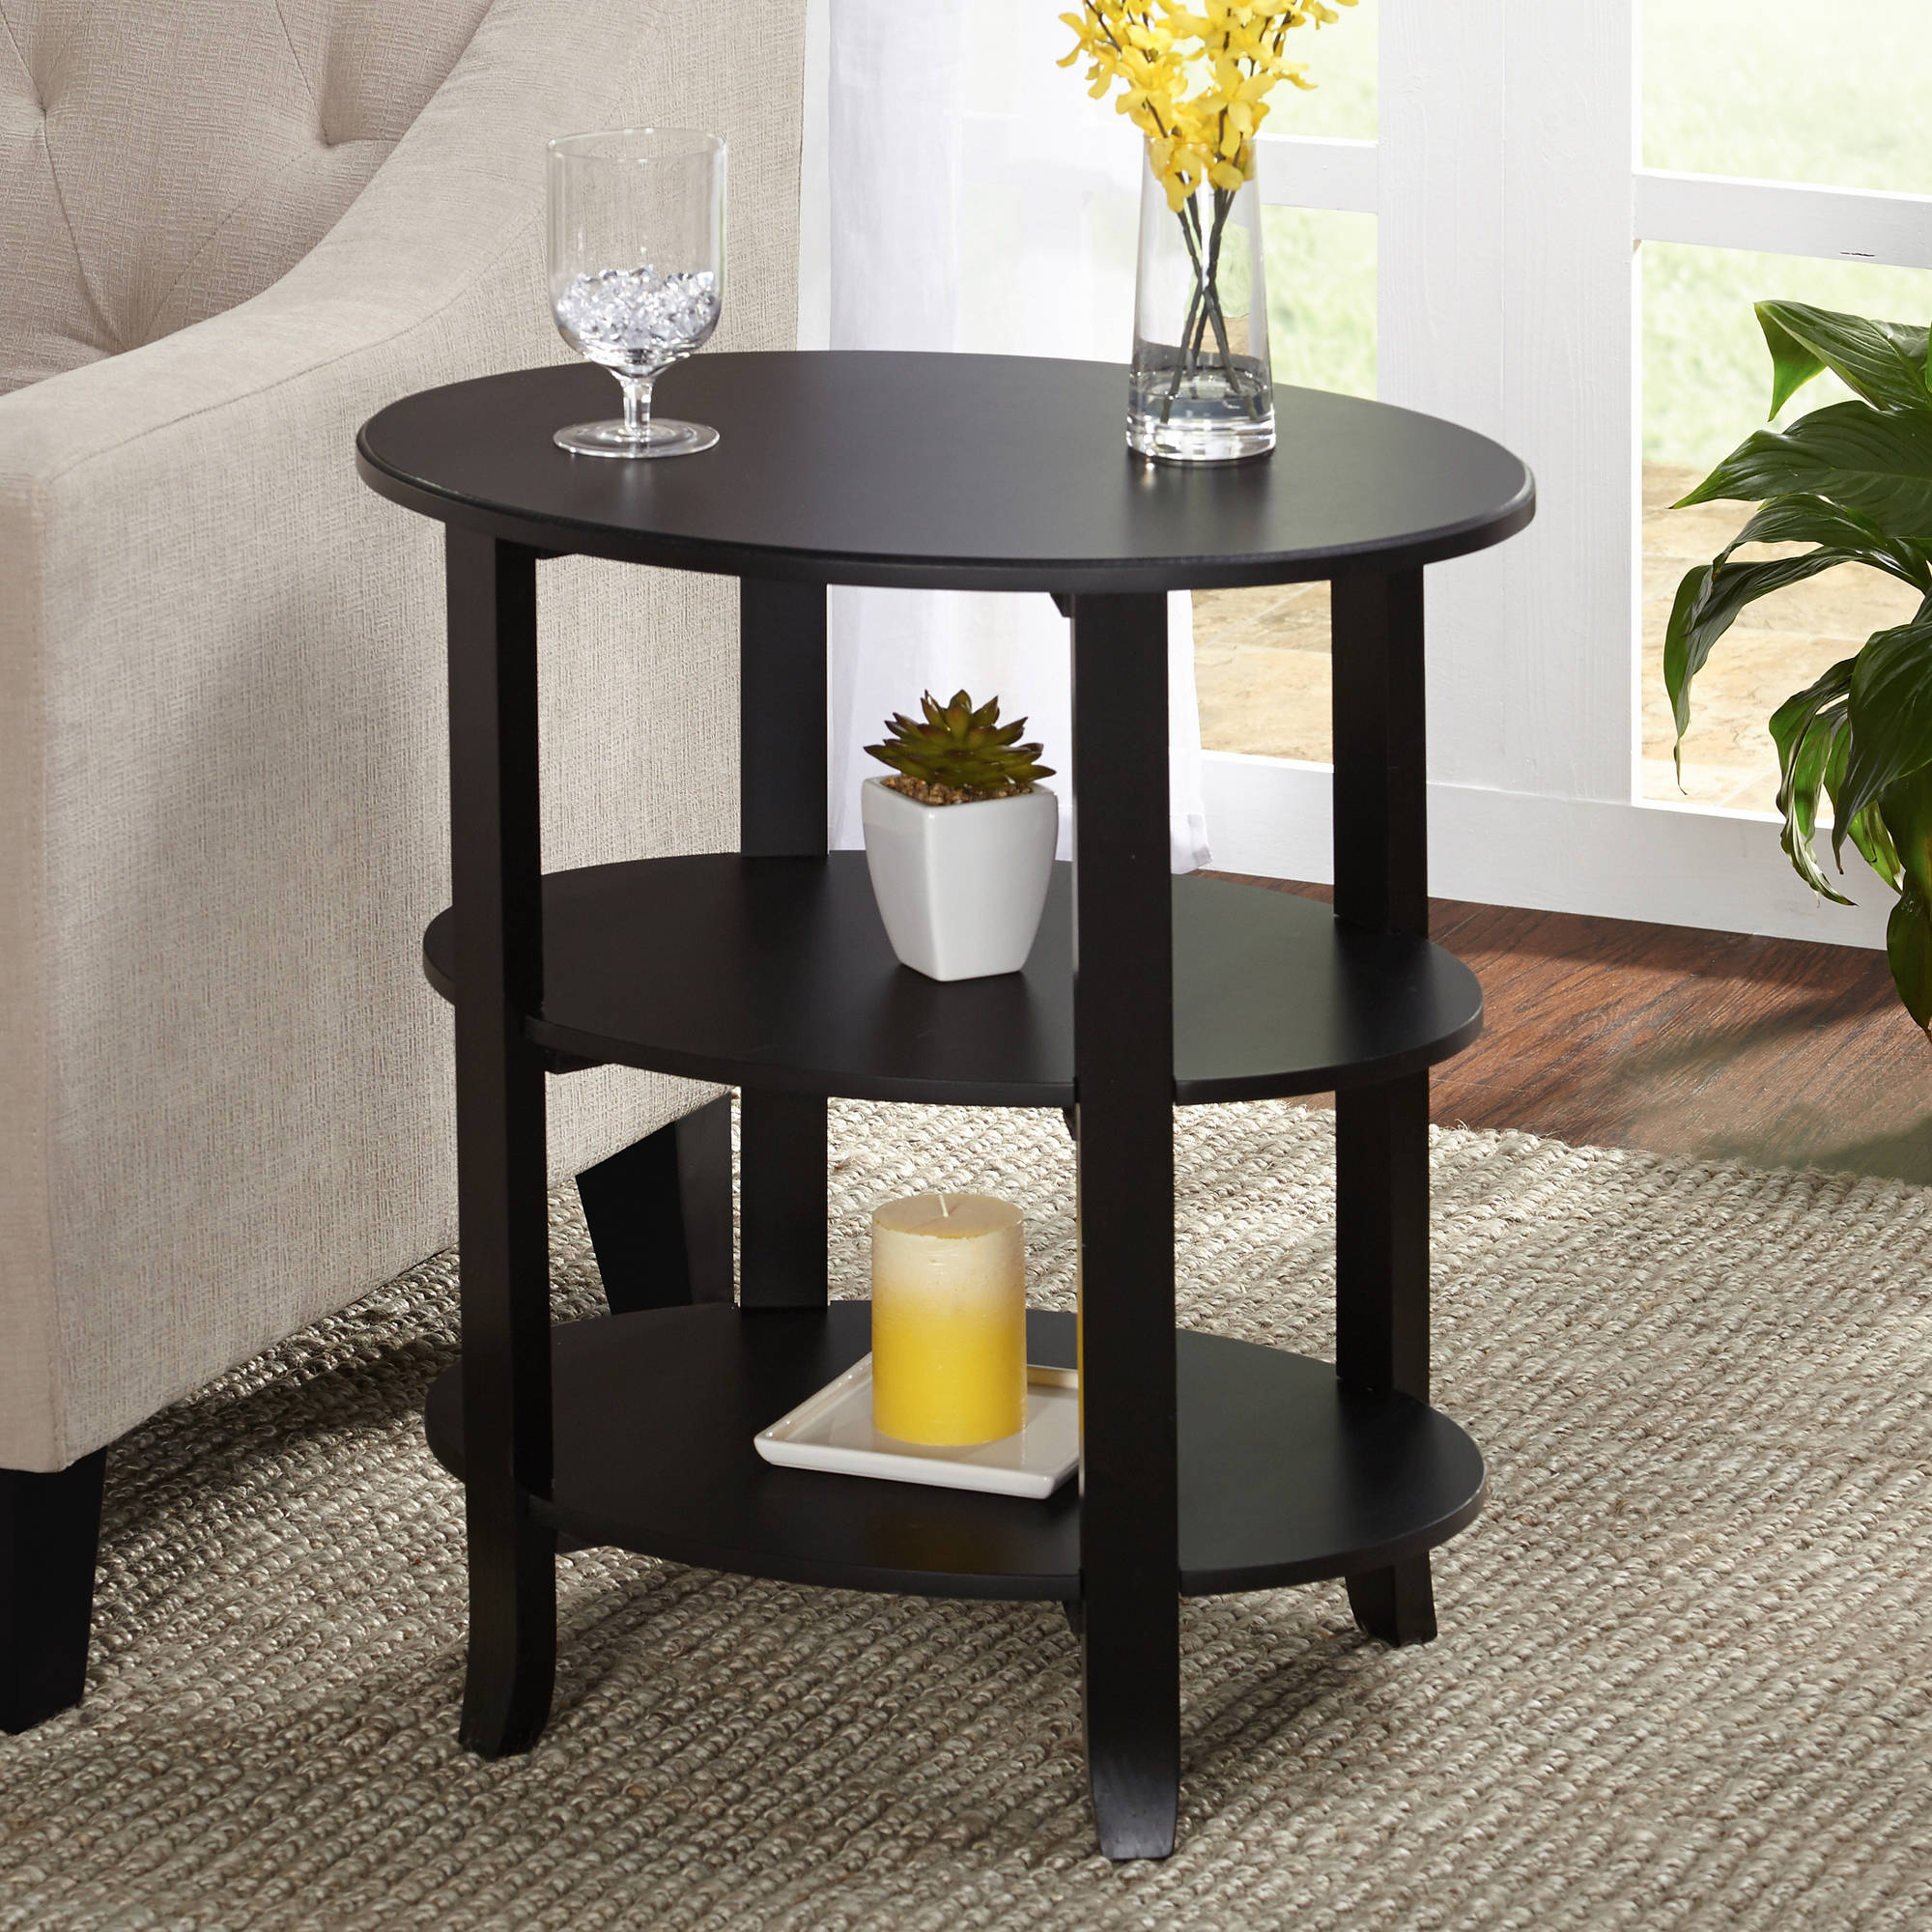 London 3 Tier Oval End Table, Multiple Finishes   Walmart.com